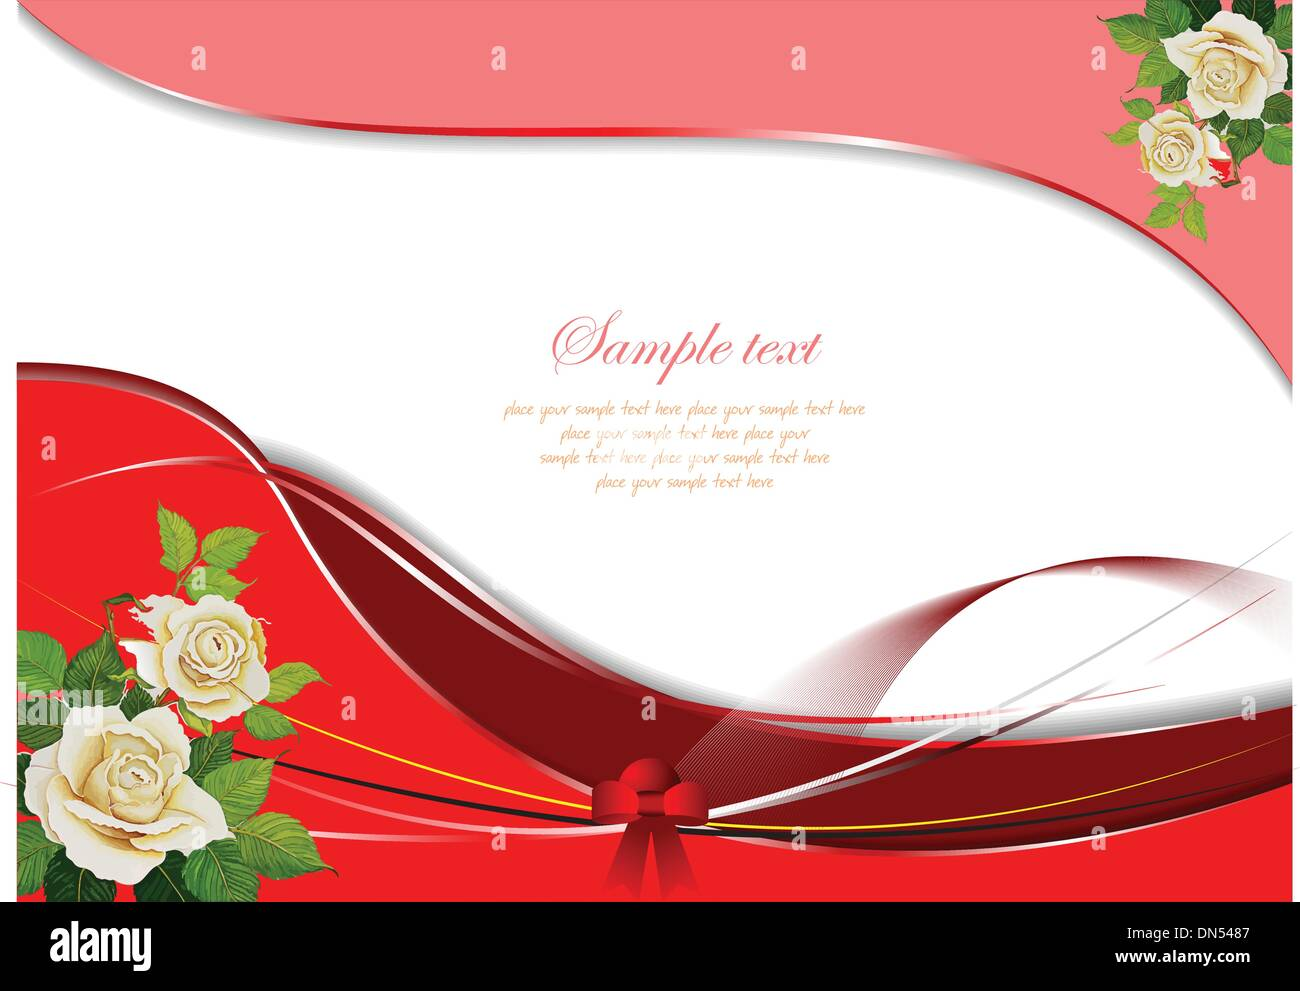 Wedding Day Congratulations Card Stock Vector Images - Alamy